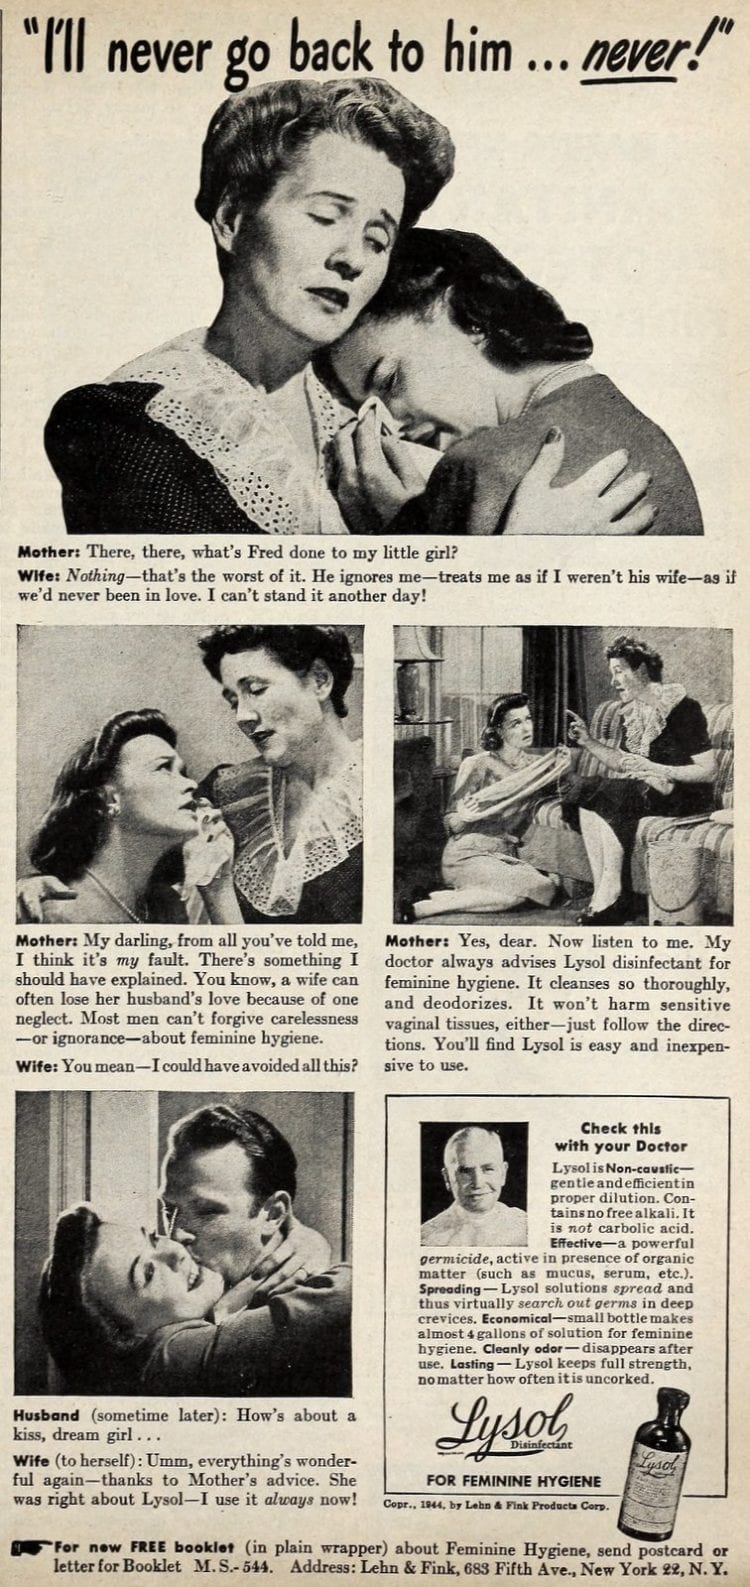 Vintage Lysol douche ads from the 1950s (4)